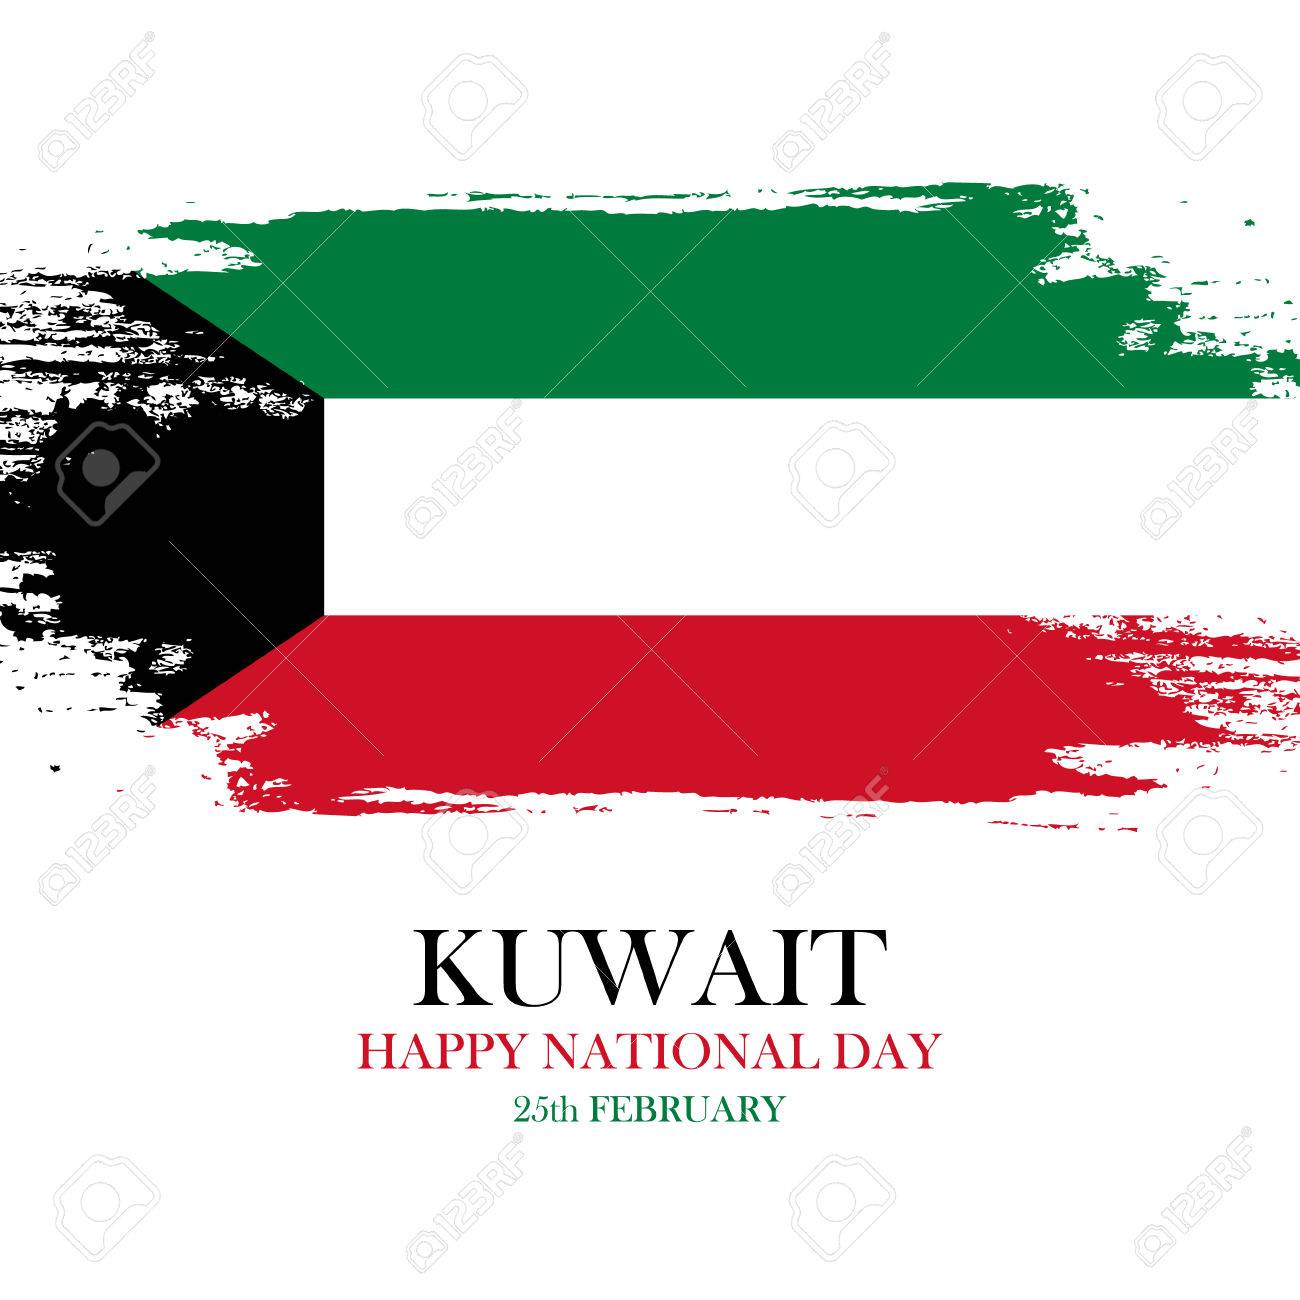 Kuwait National Day Greeting Card Vector Illustration Royalty Free